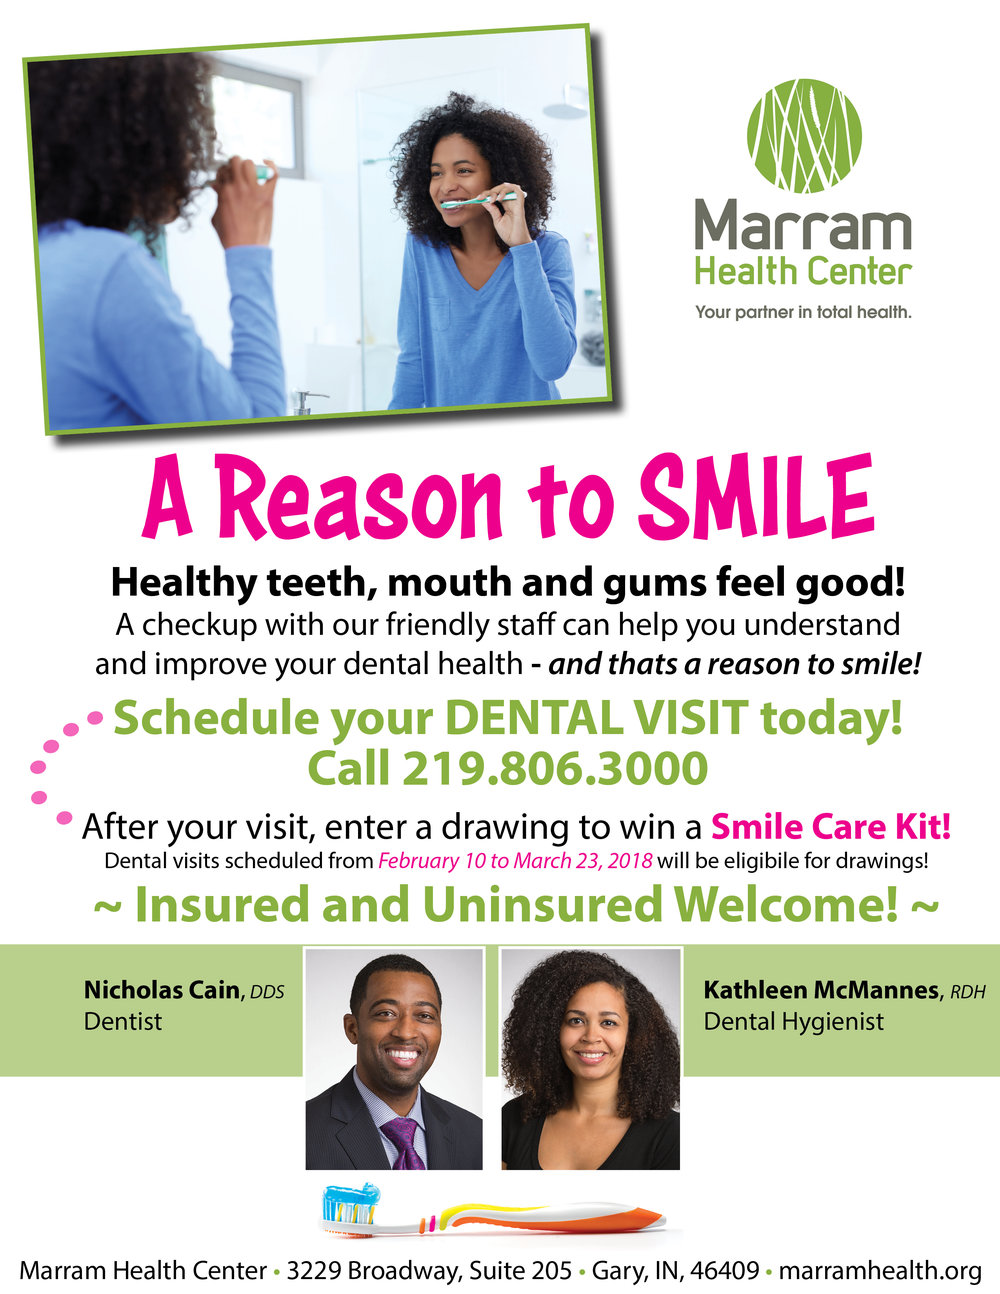 DentalPromotionFlyer.jpg